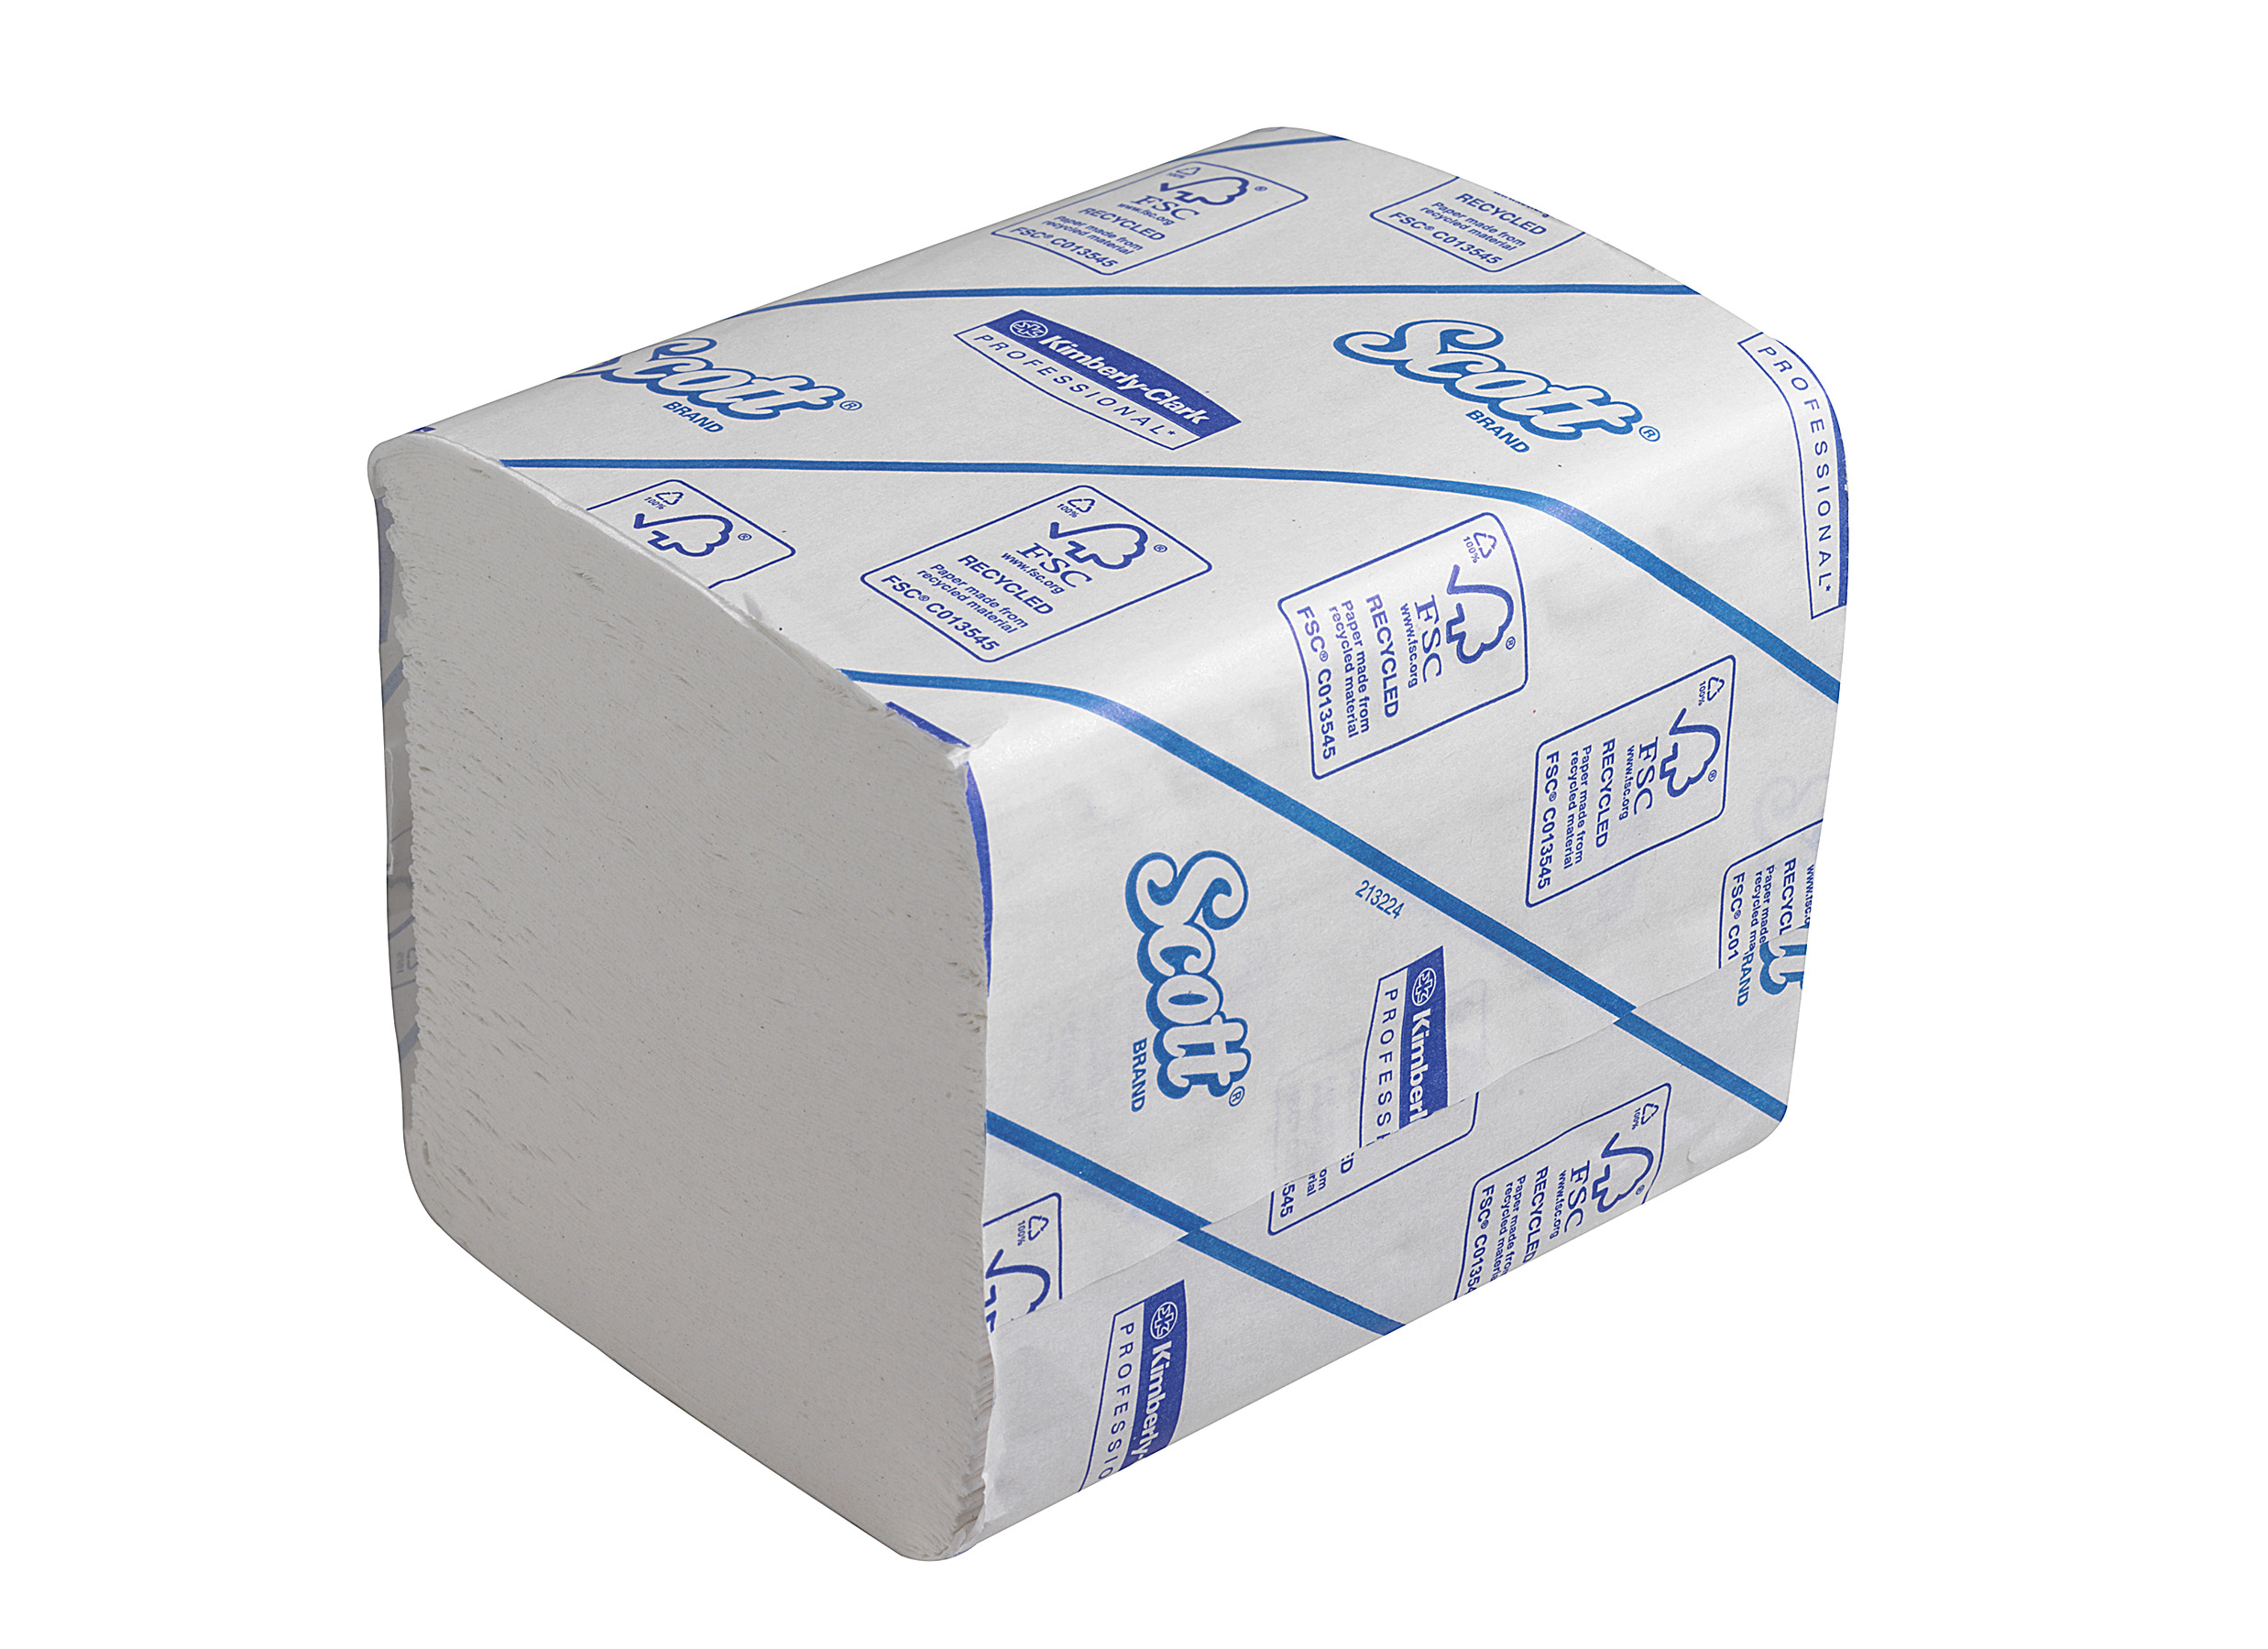 Scott 36 Toilet Tissue - Bulk Pack